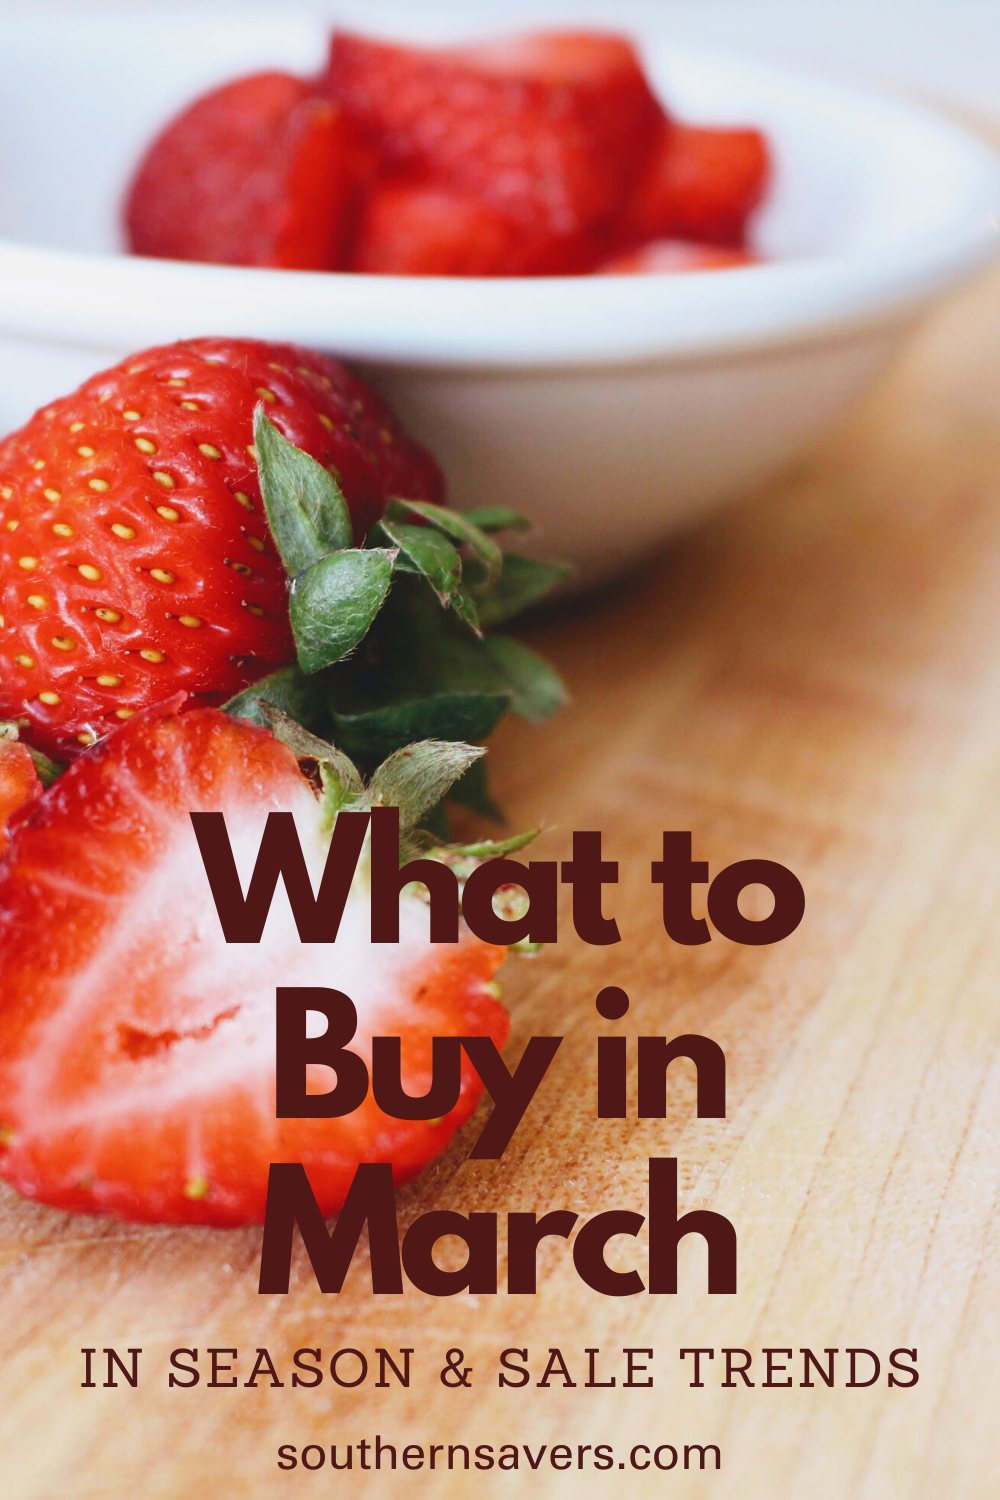 Make the most of your budget by staying on top of sale trends for each season. Here's what to buy in March to get the best produce and deals!